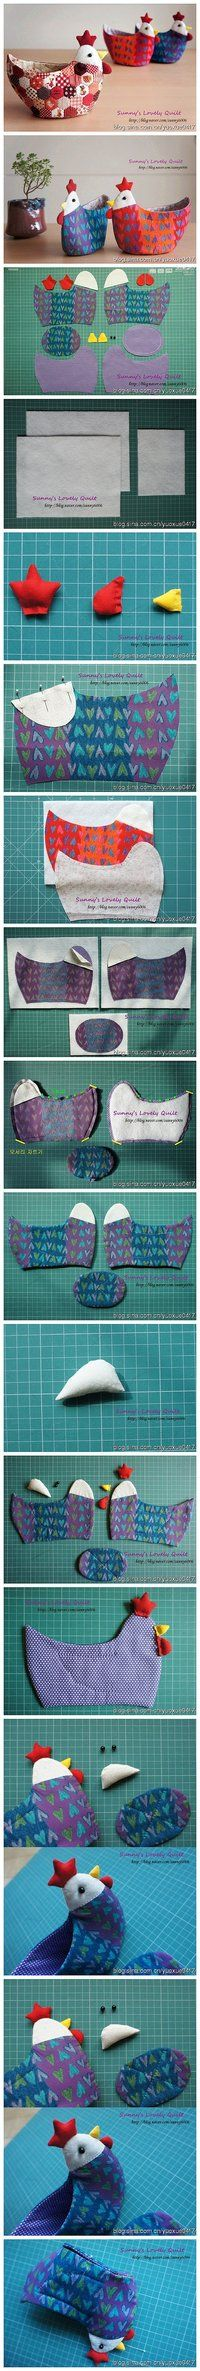 CUTE! - D.I.Y chicken baskets